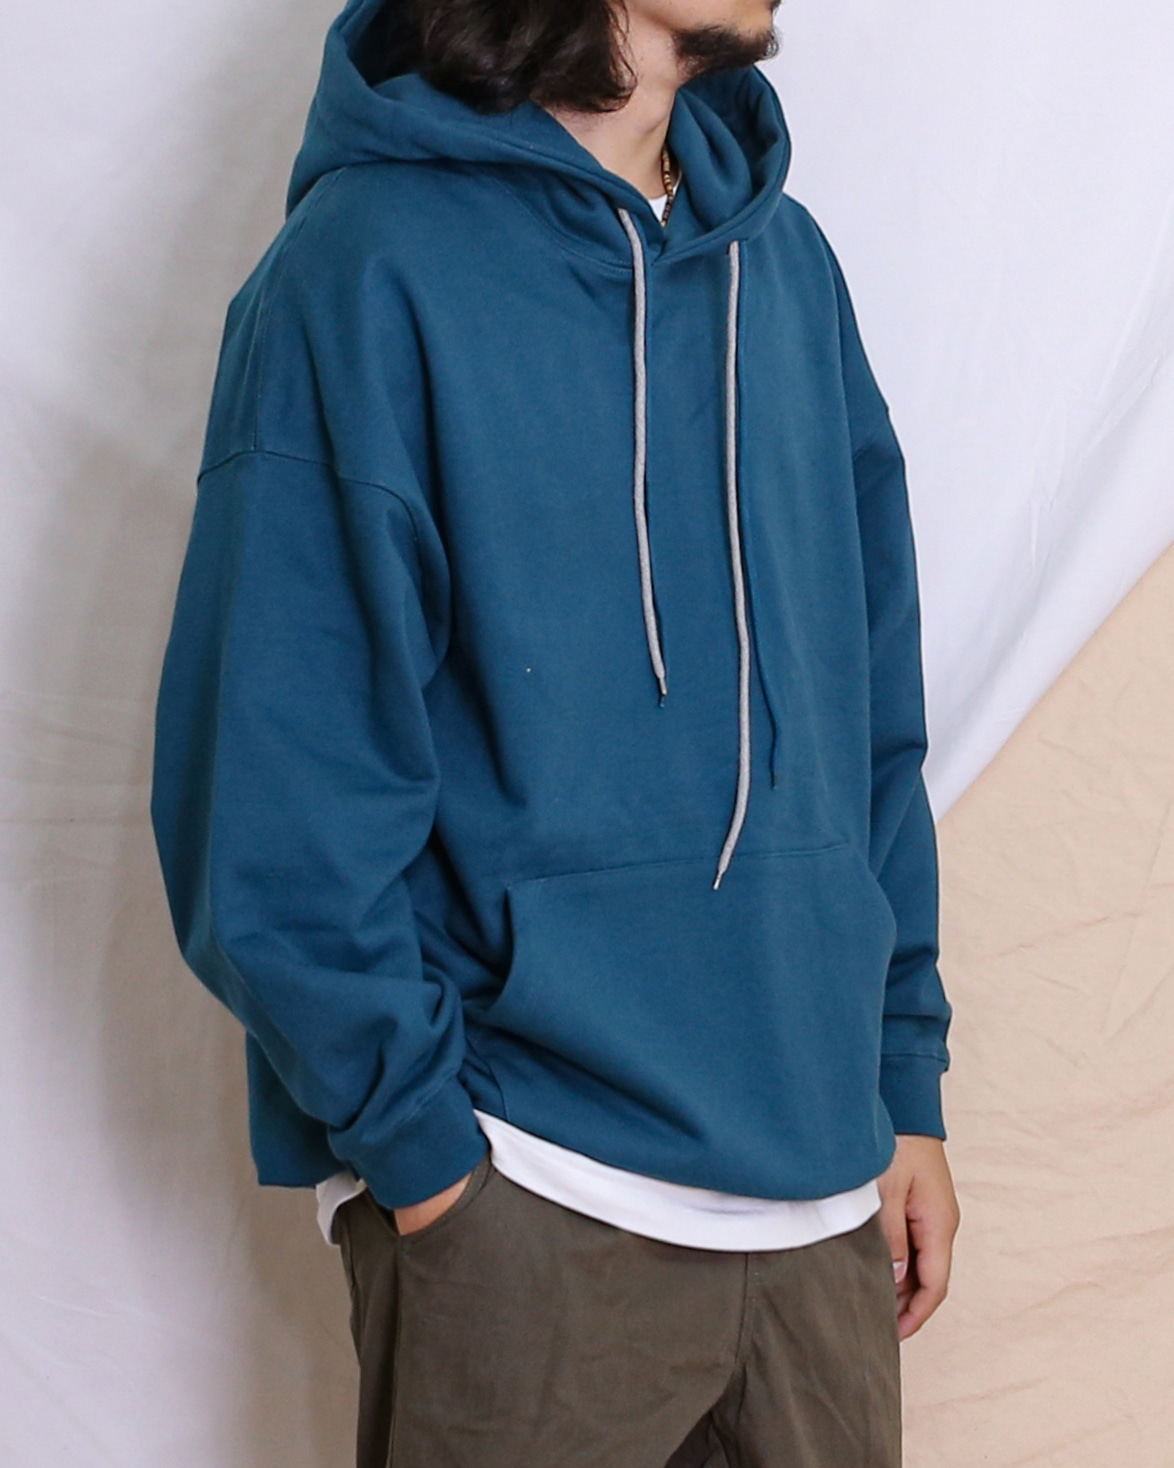 Double String Velcro Hoodie (Black/Gray/Mustard/BlueGreen)